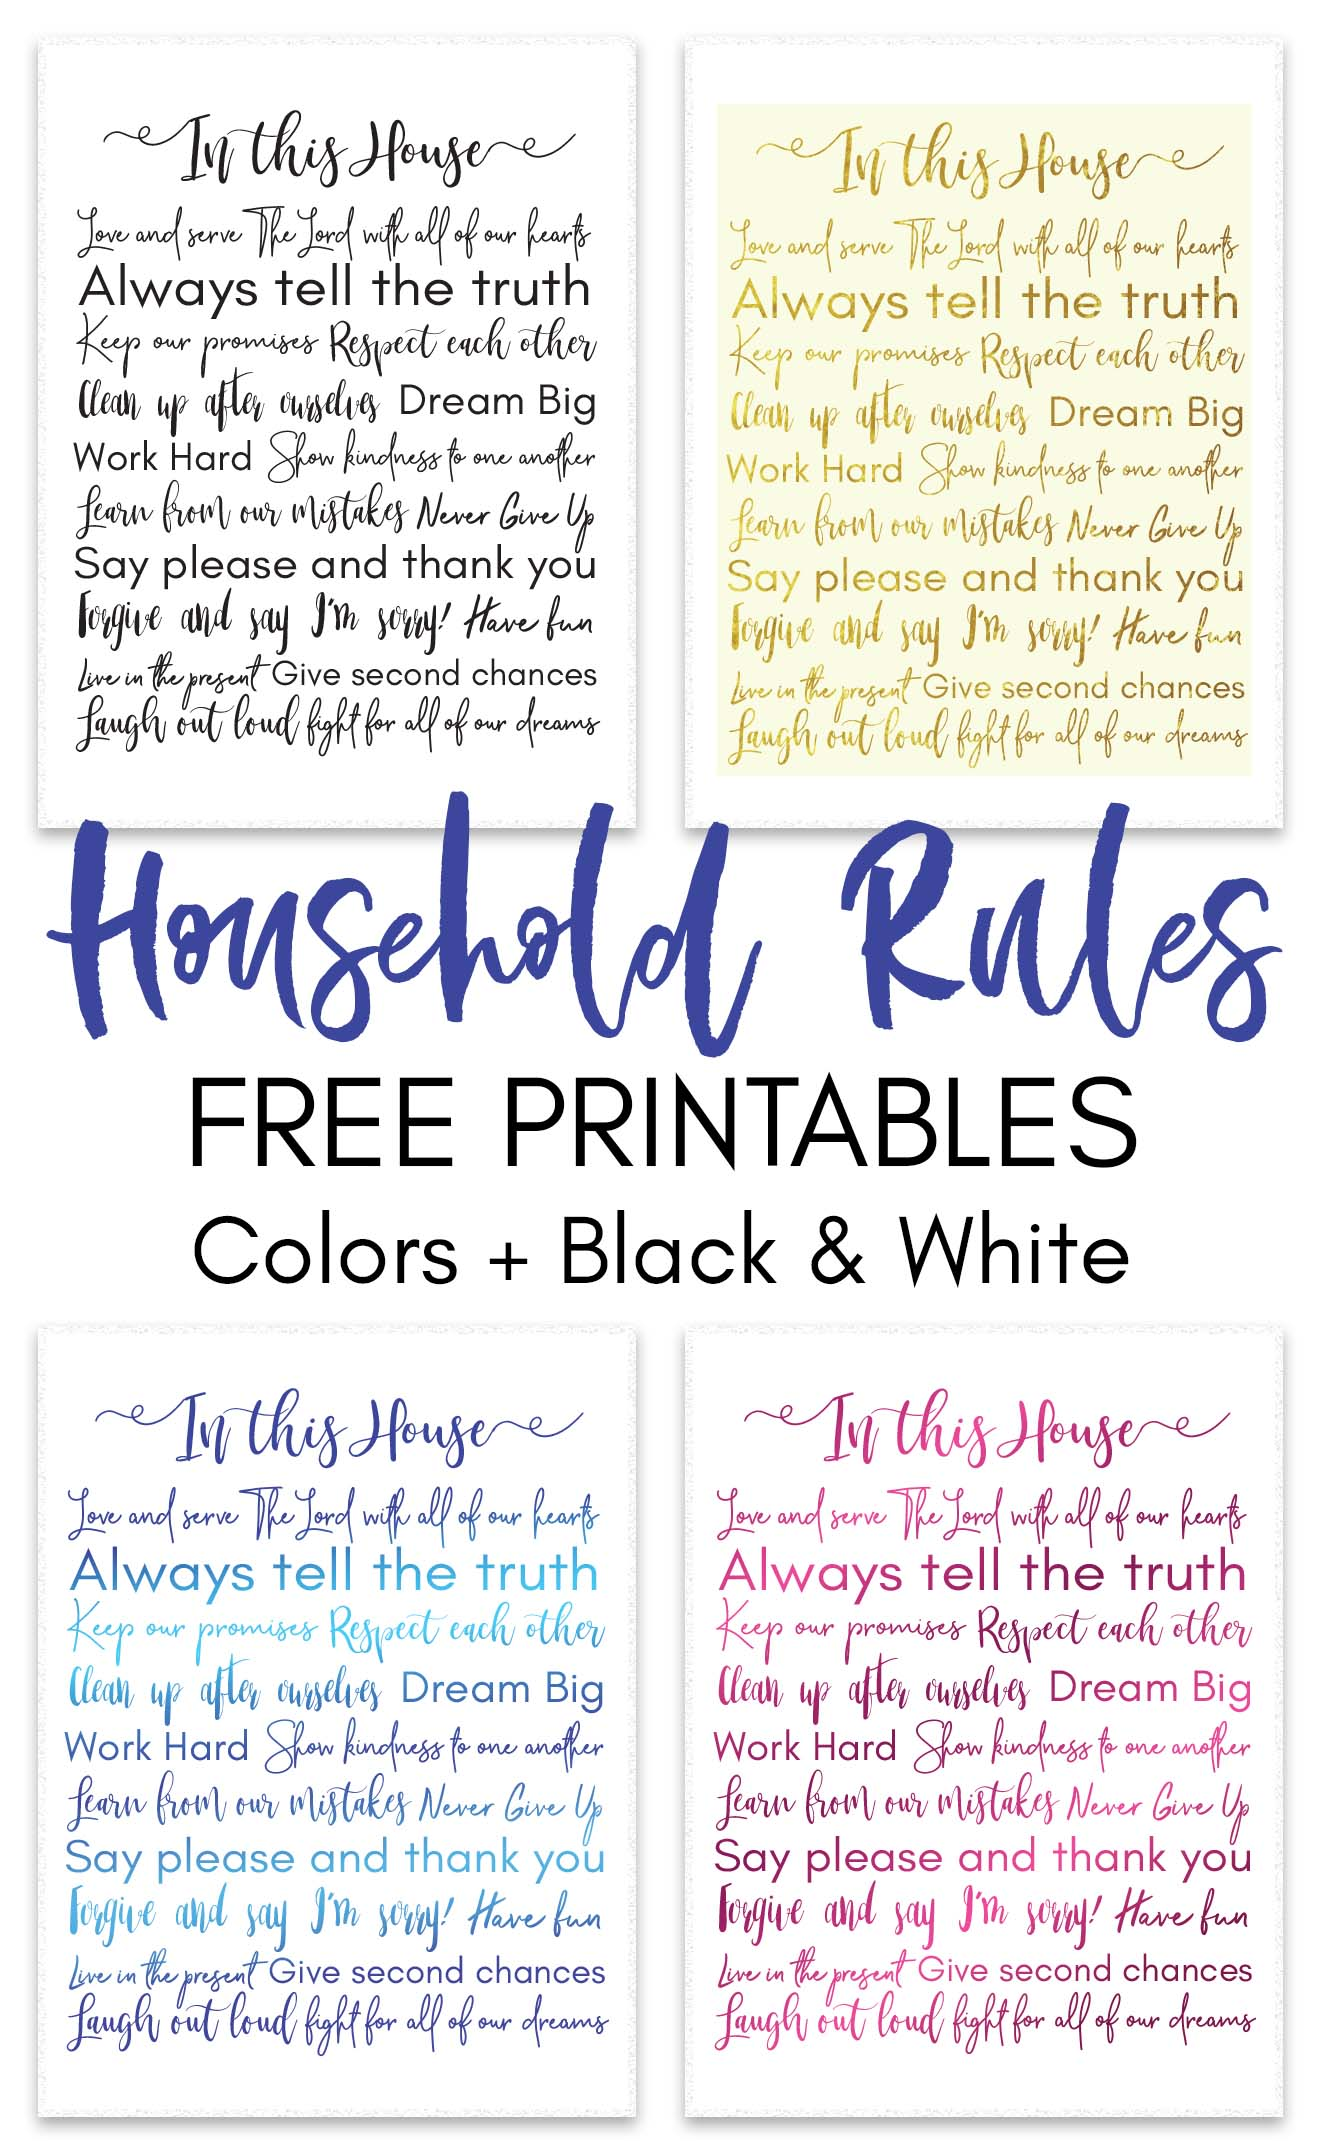 Household Rules Free Printable